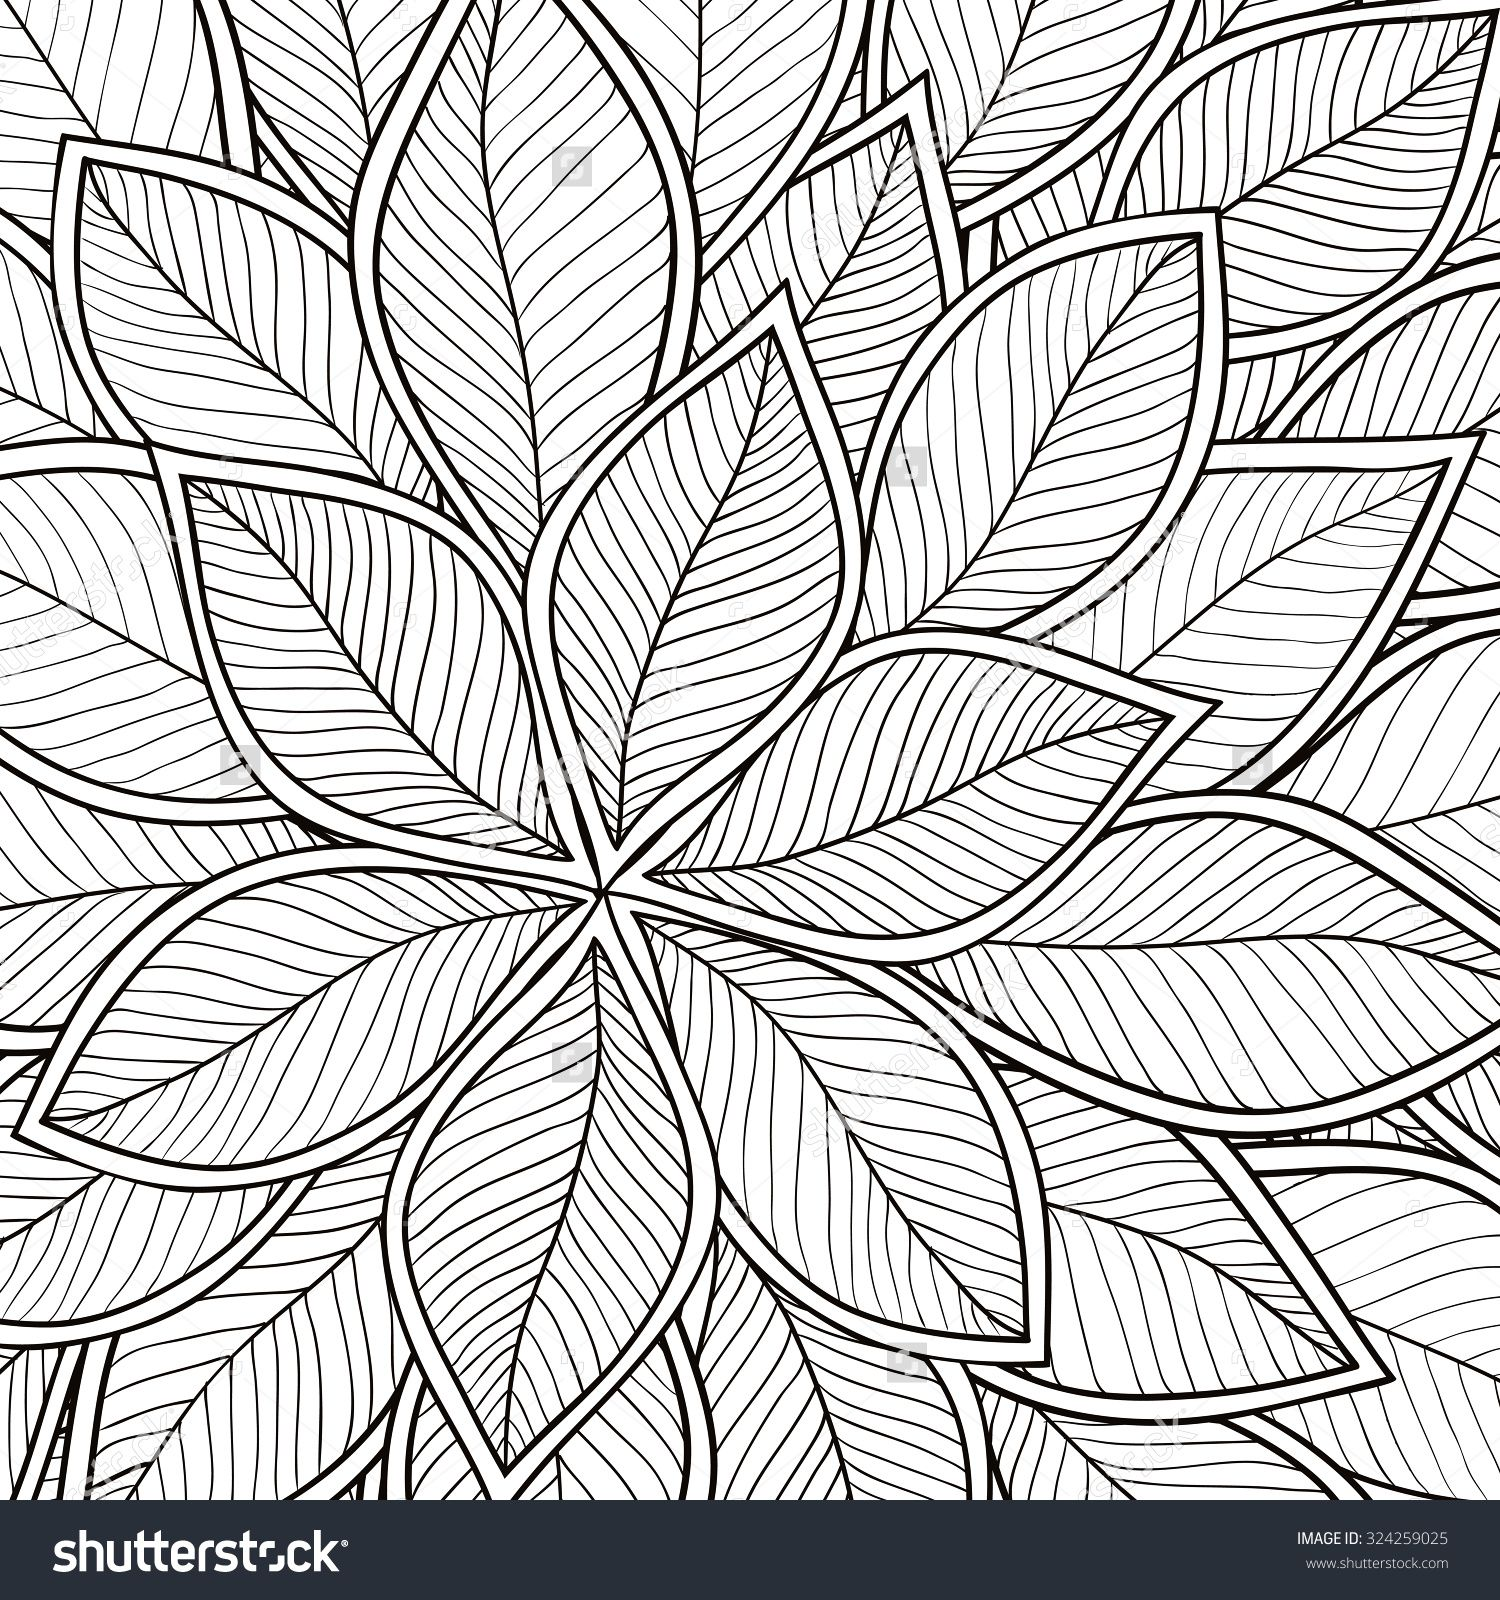 Pattern For Coloring Book Leaves Ethnic Floral Retro Doodle Tribal Design Element Black And White Background Zentangle Patterns